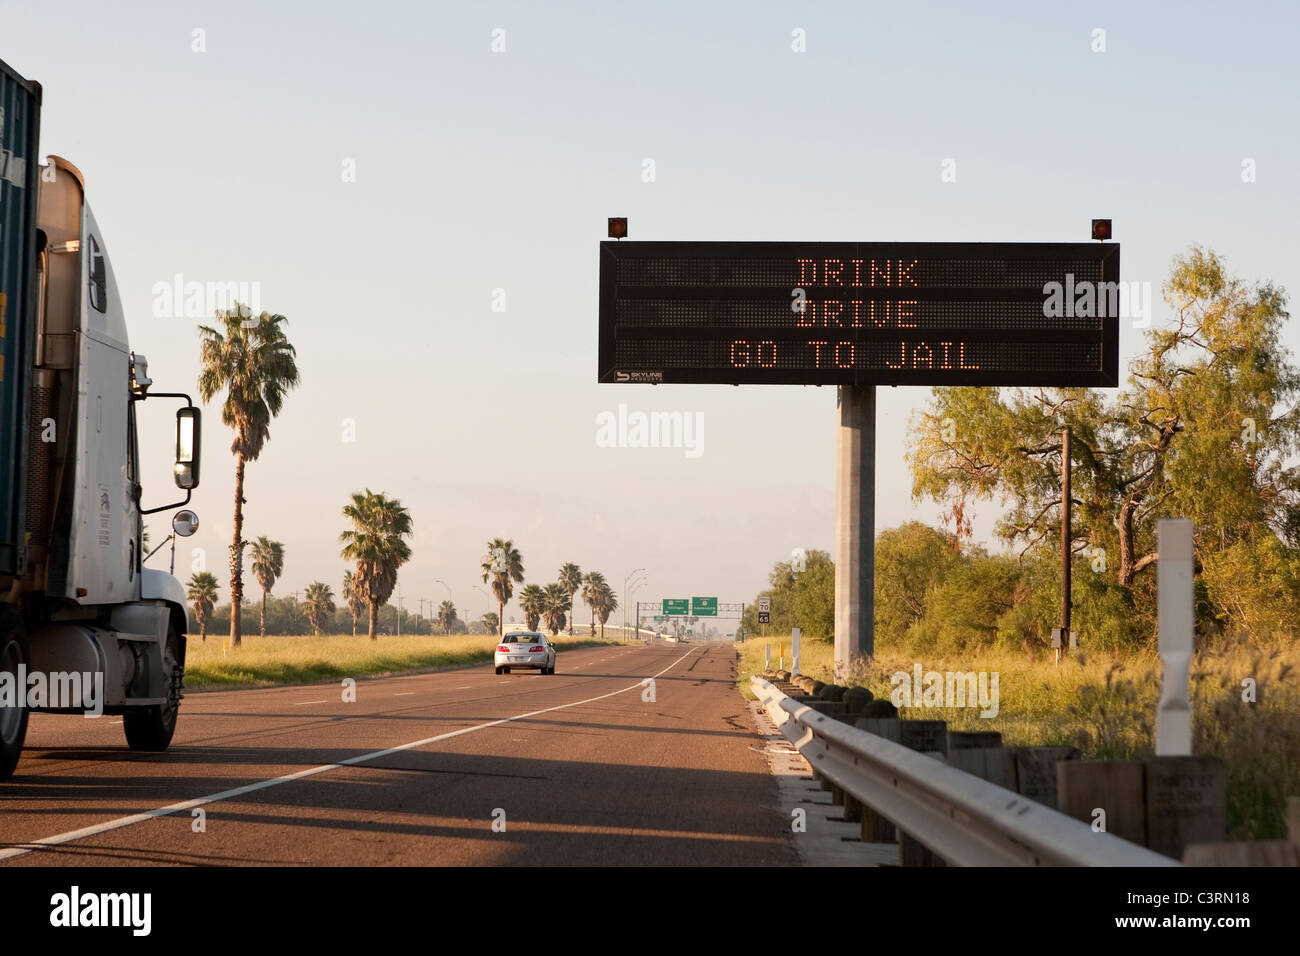 Highway message board on stretch of US Highway 77 in South Texas warns drivers against drunk driving - Stock Image